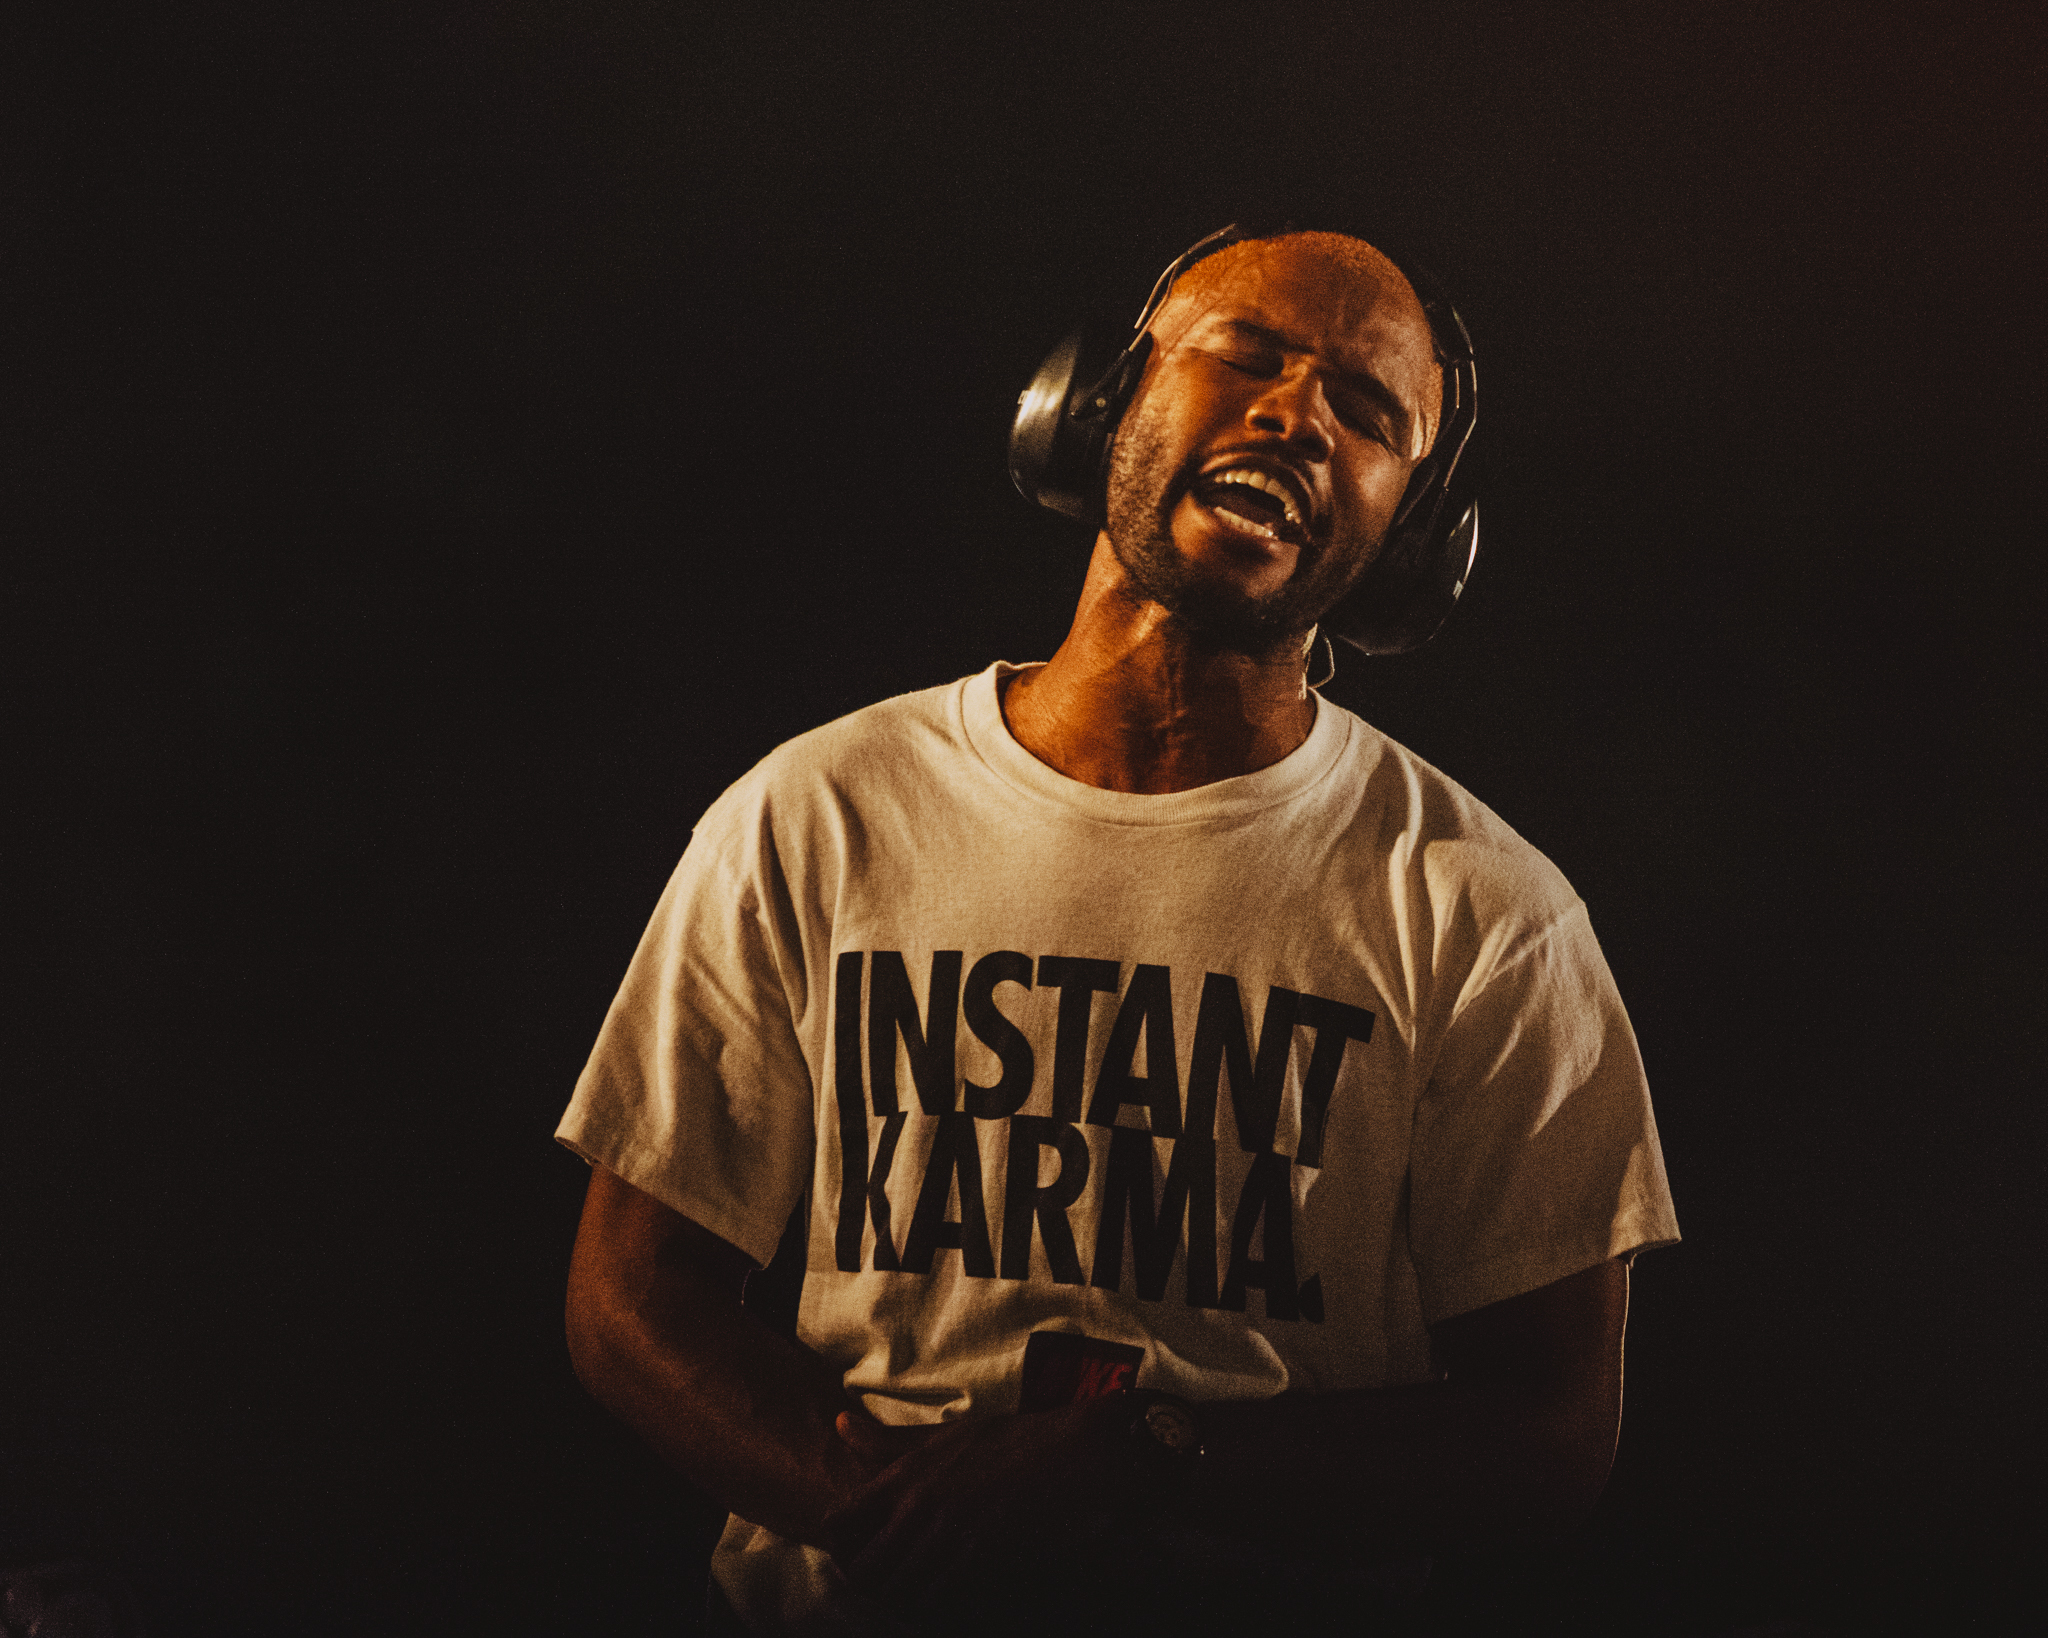 Frank Ocean, Rage Against the Machine, Travis Scott top Coachella 2020 lineup